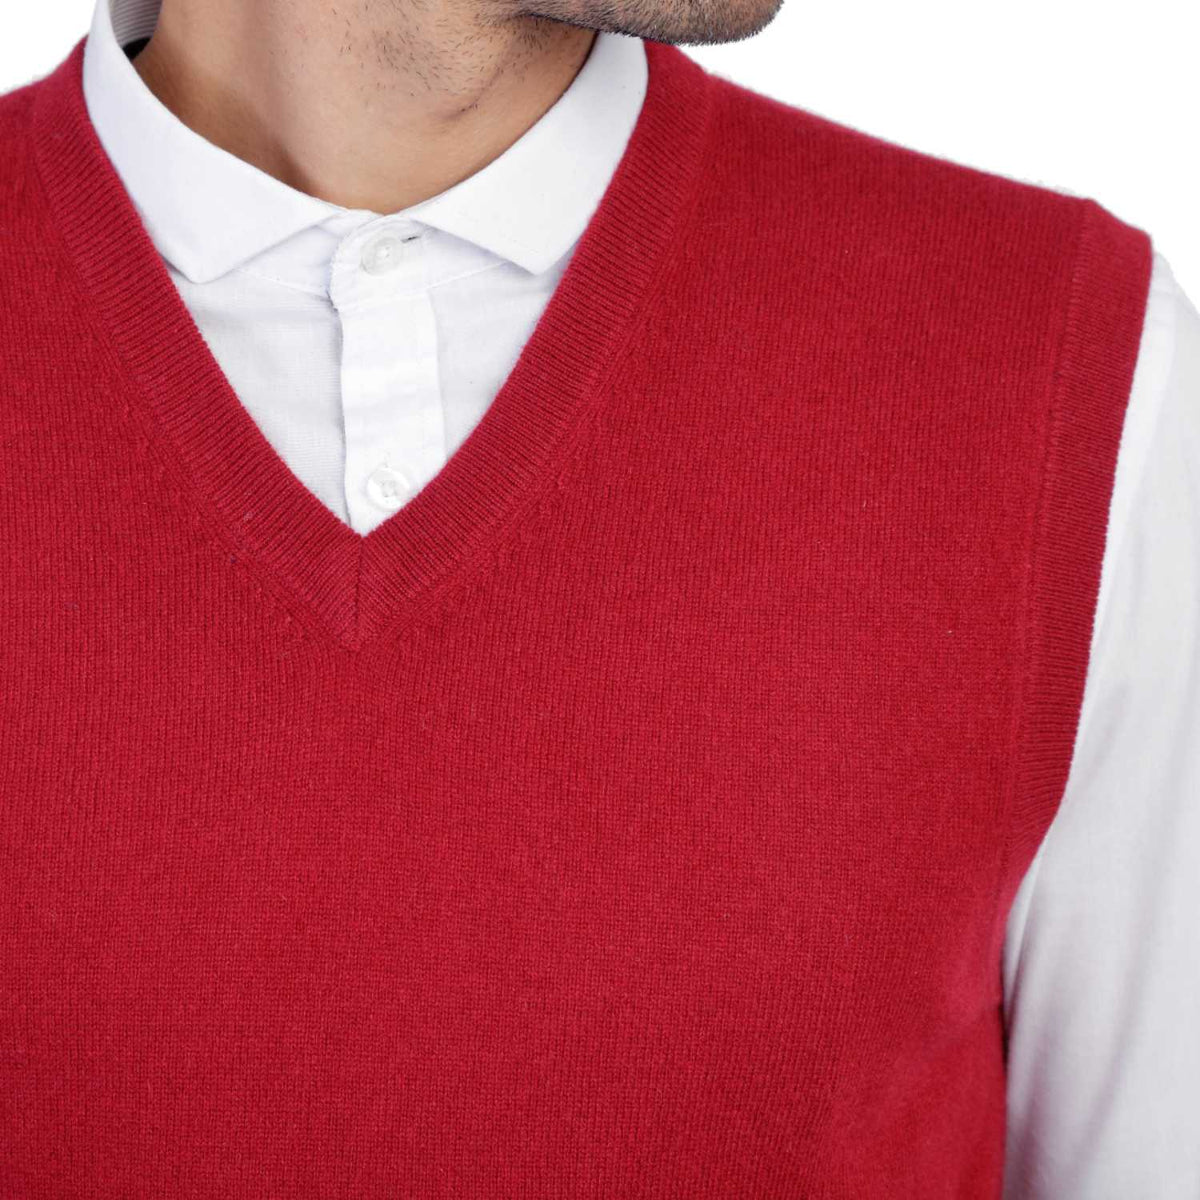 Mens Burgundy Wine Cashmere Sleeveless Vest Sweater | Close up | Shop at The Cashmere Choice | London